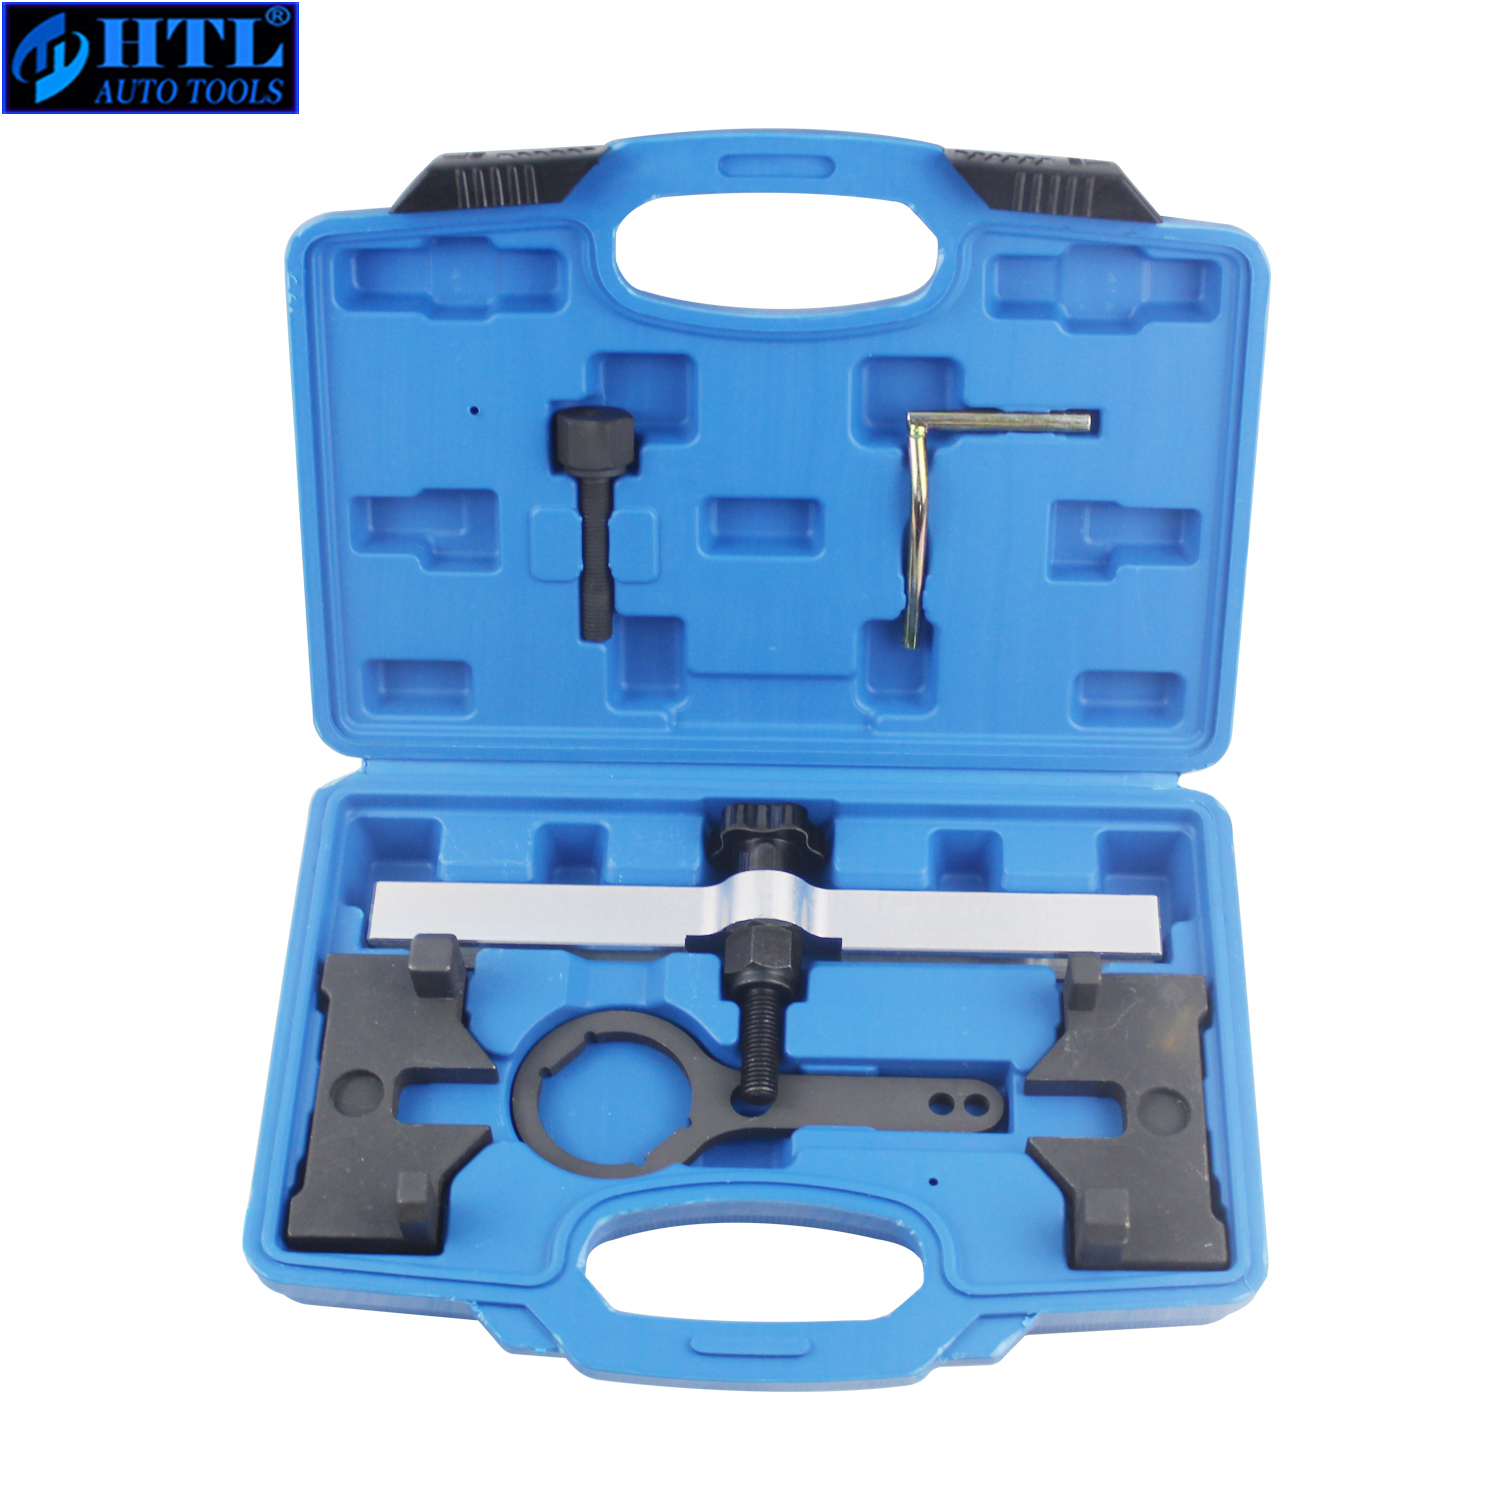 6PCS Engine Timing Locking Tool Kit  FOR BMW V8 N63 N74 X6 Drive 550I 750I 760I Engines